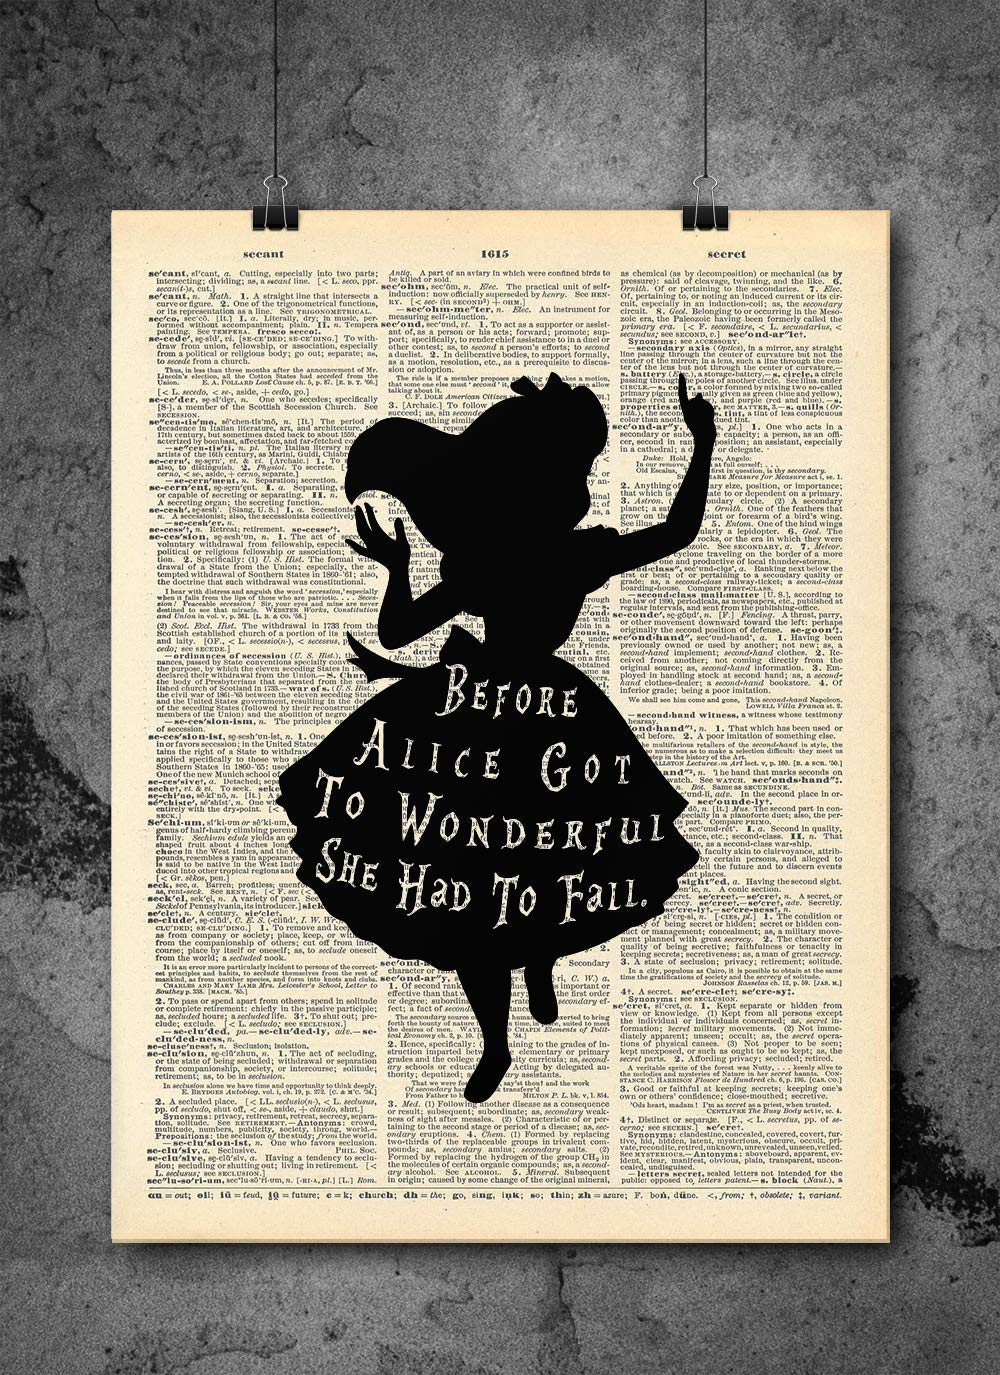 Alice In Wonderland - Wonderful Quote - Alice In Wonderland Wall Art - Vintage Art - Authentic Upcycled Dictionary Art Print - Home or Office Decor - Inspirational And Motivational Quote Art